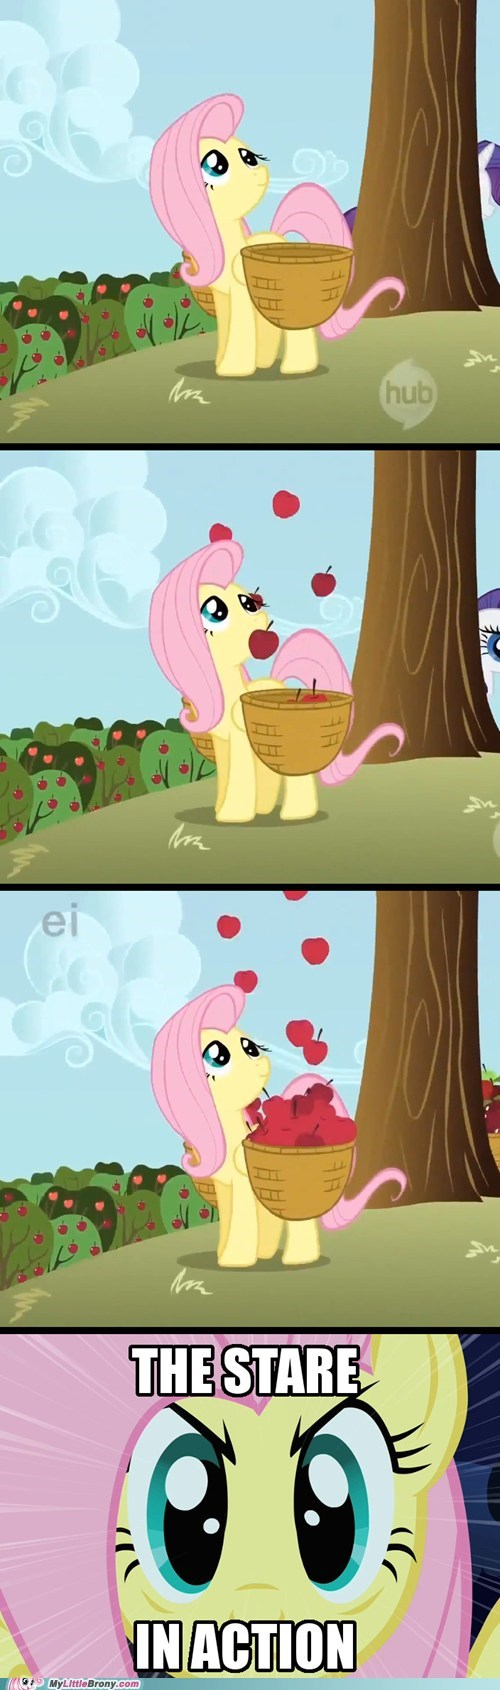 the stare comic fluttershy - 6685771264